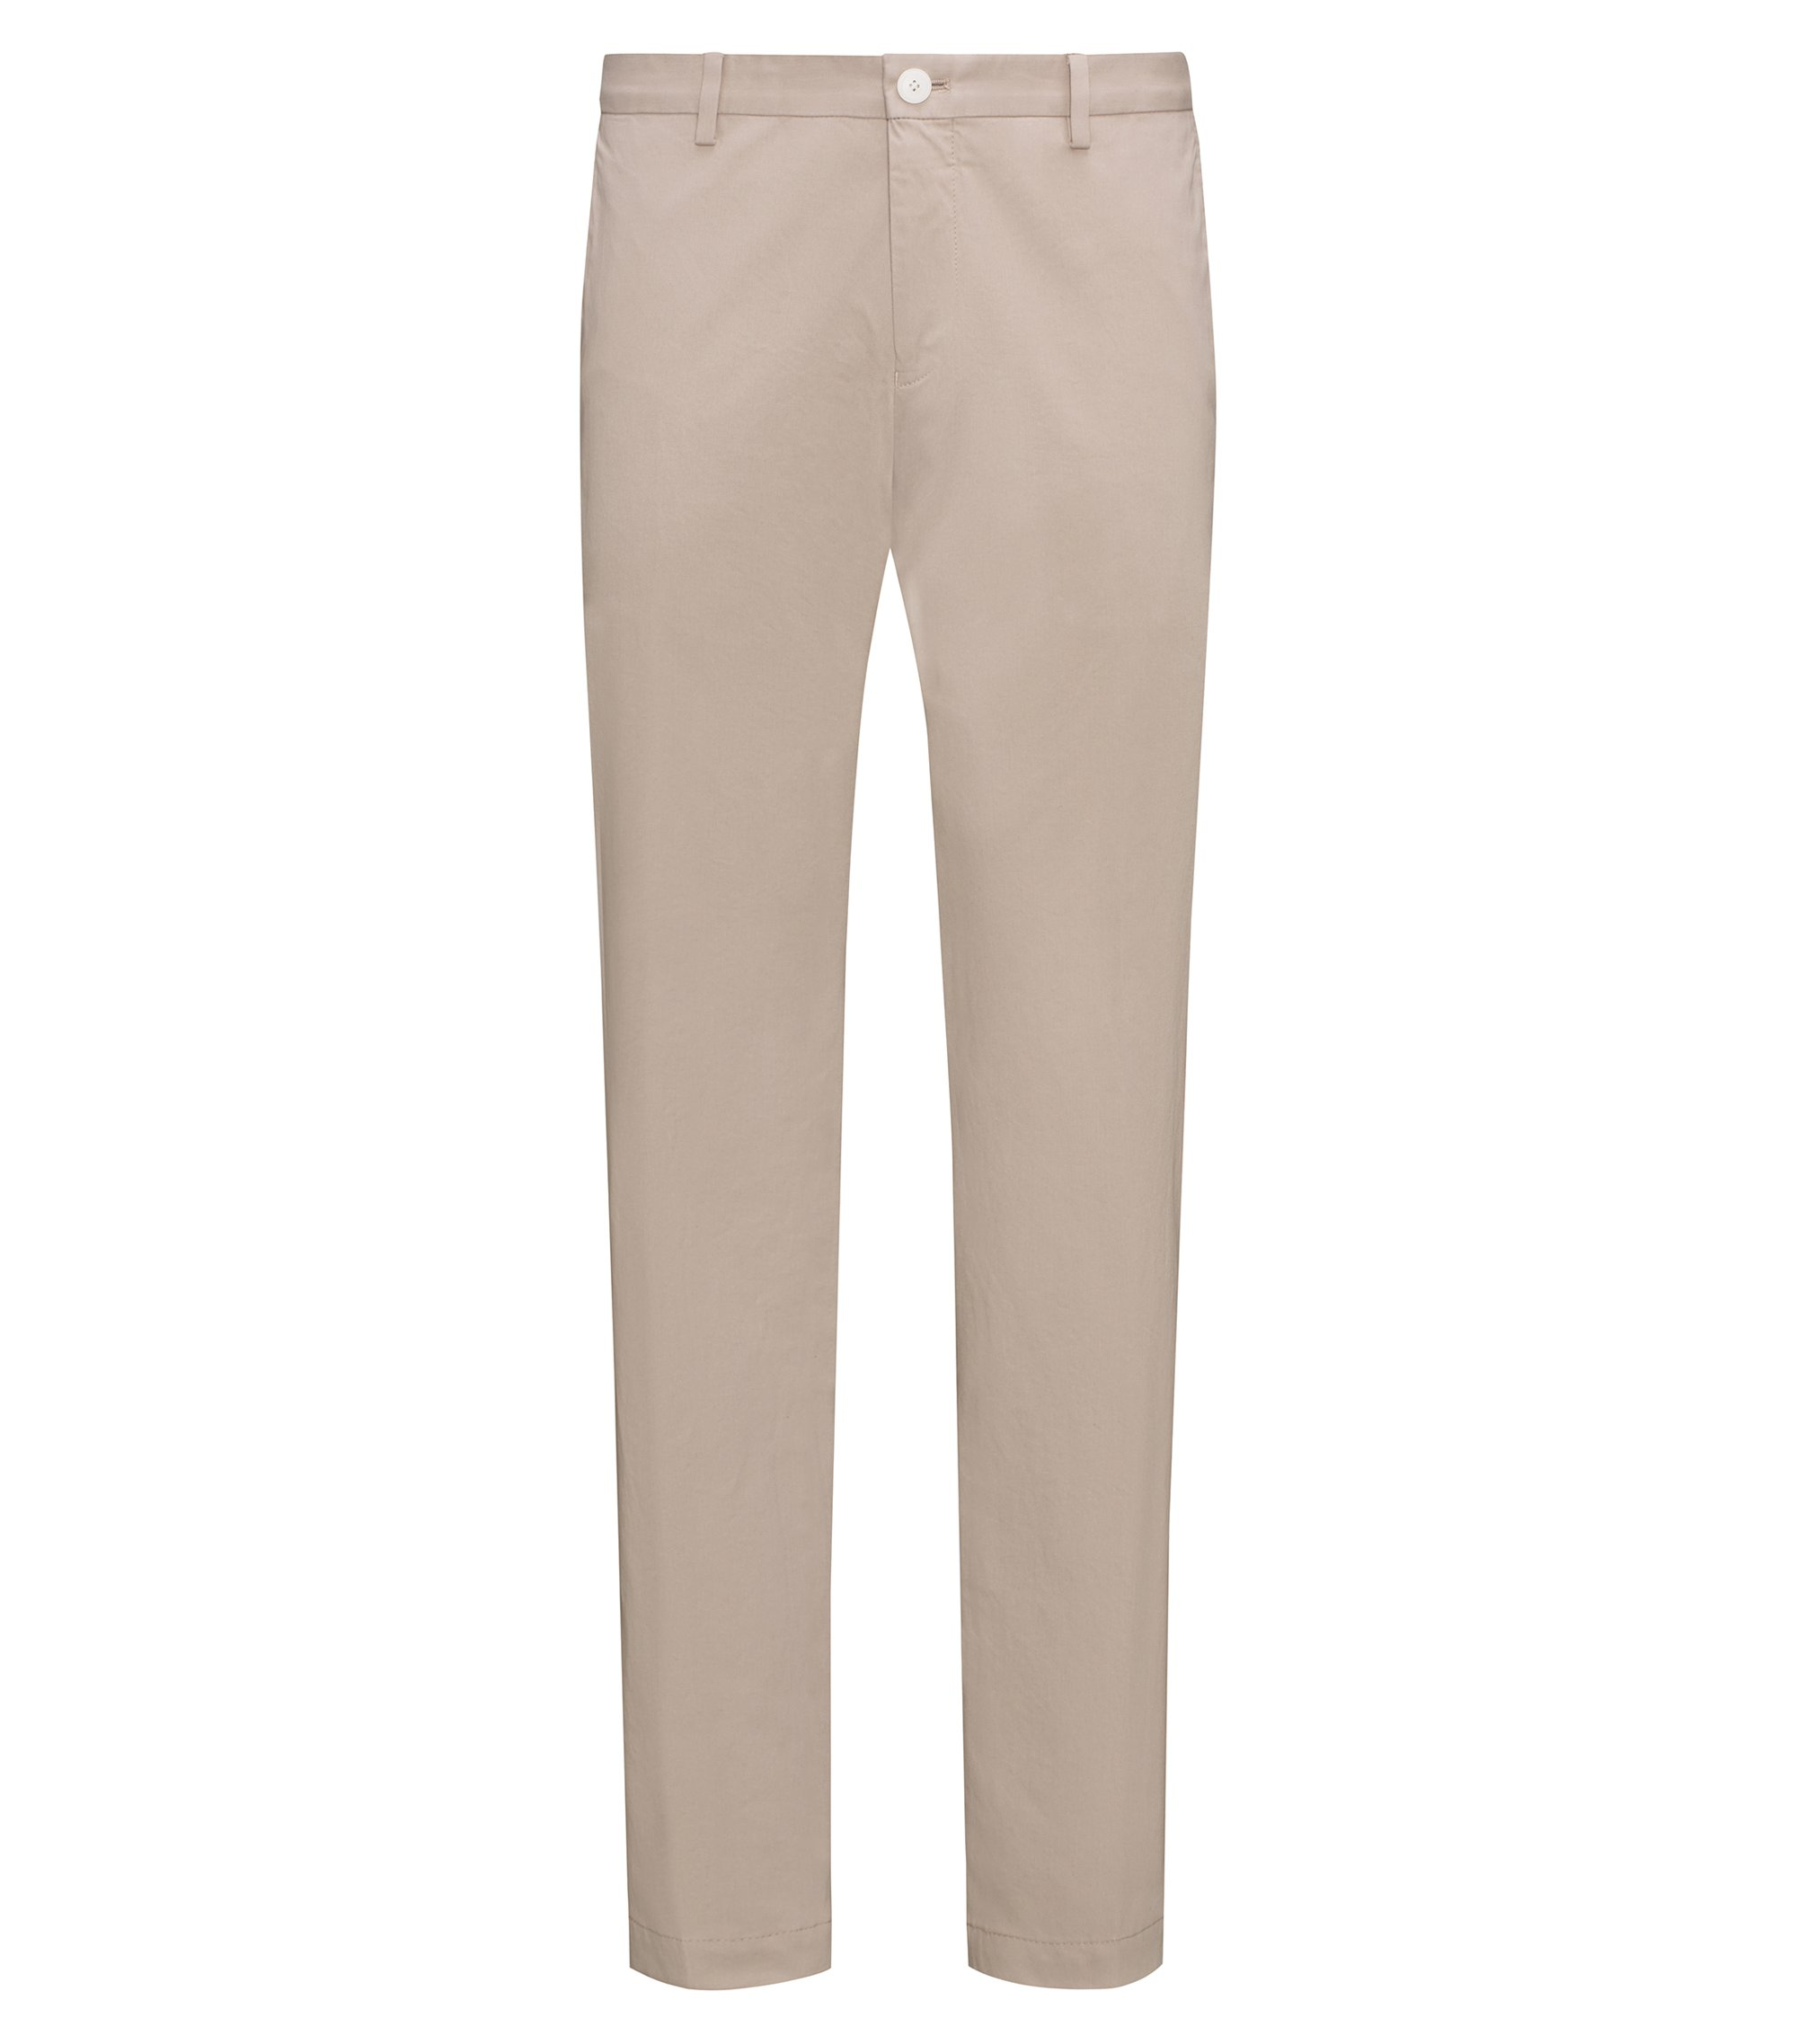 Pantalon Slim Fit en coton stretch légèrement délavé , Beige